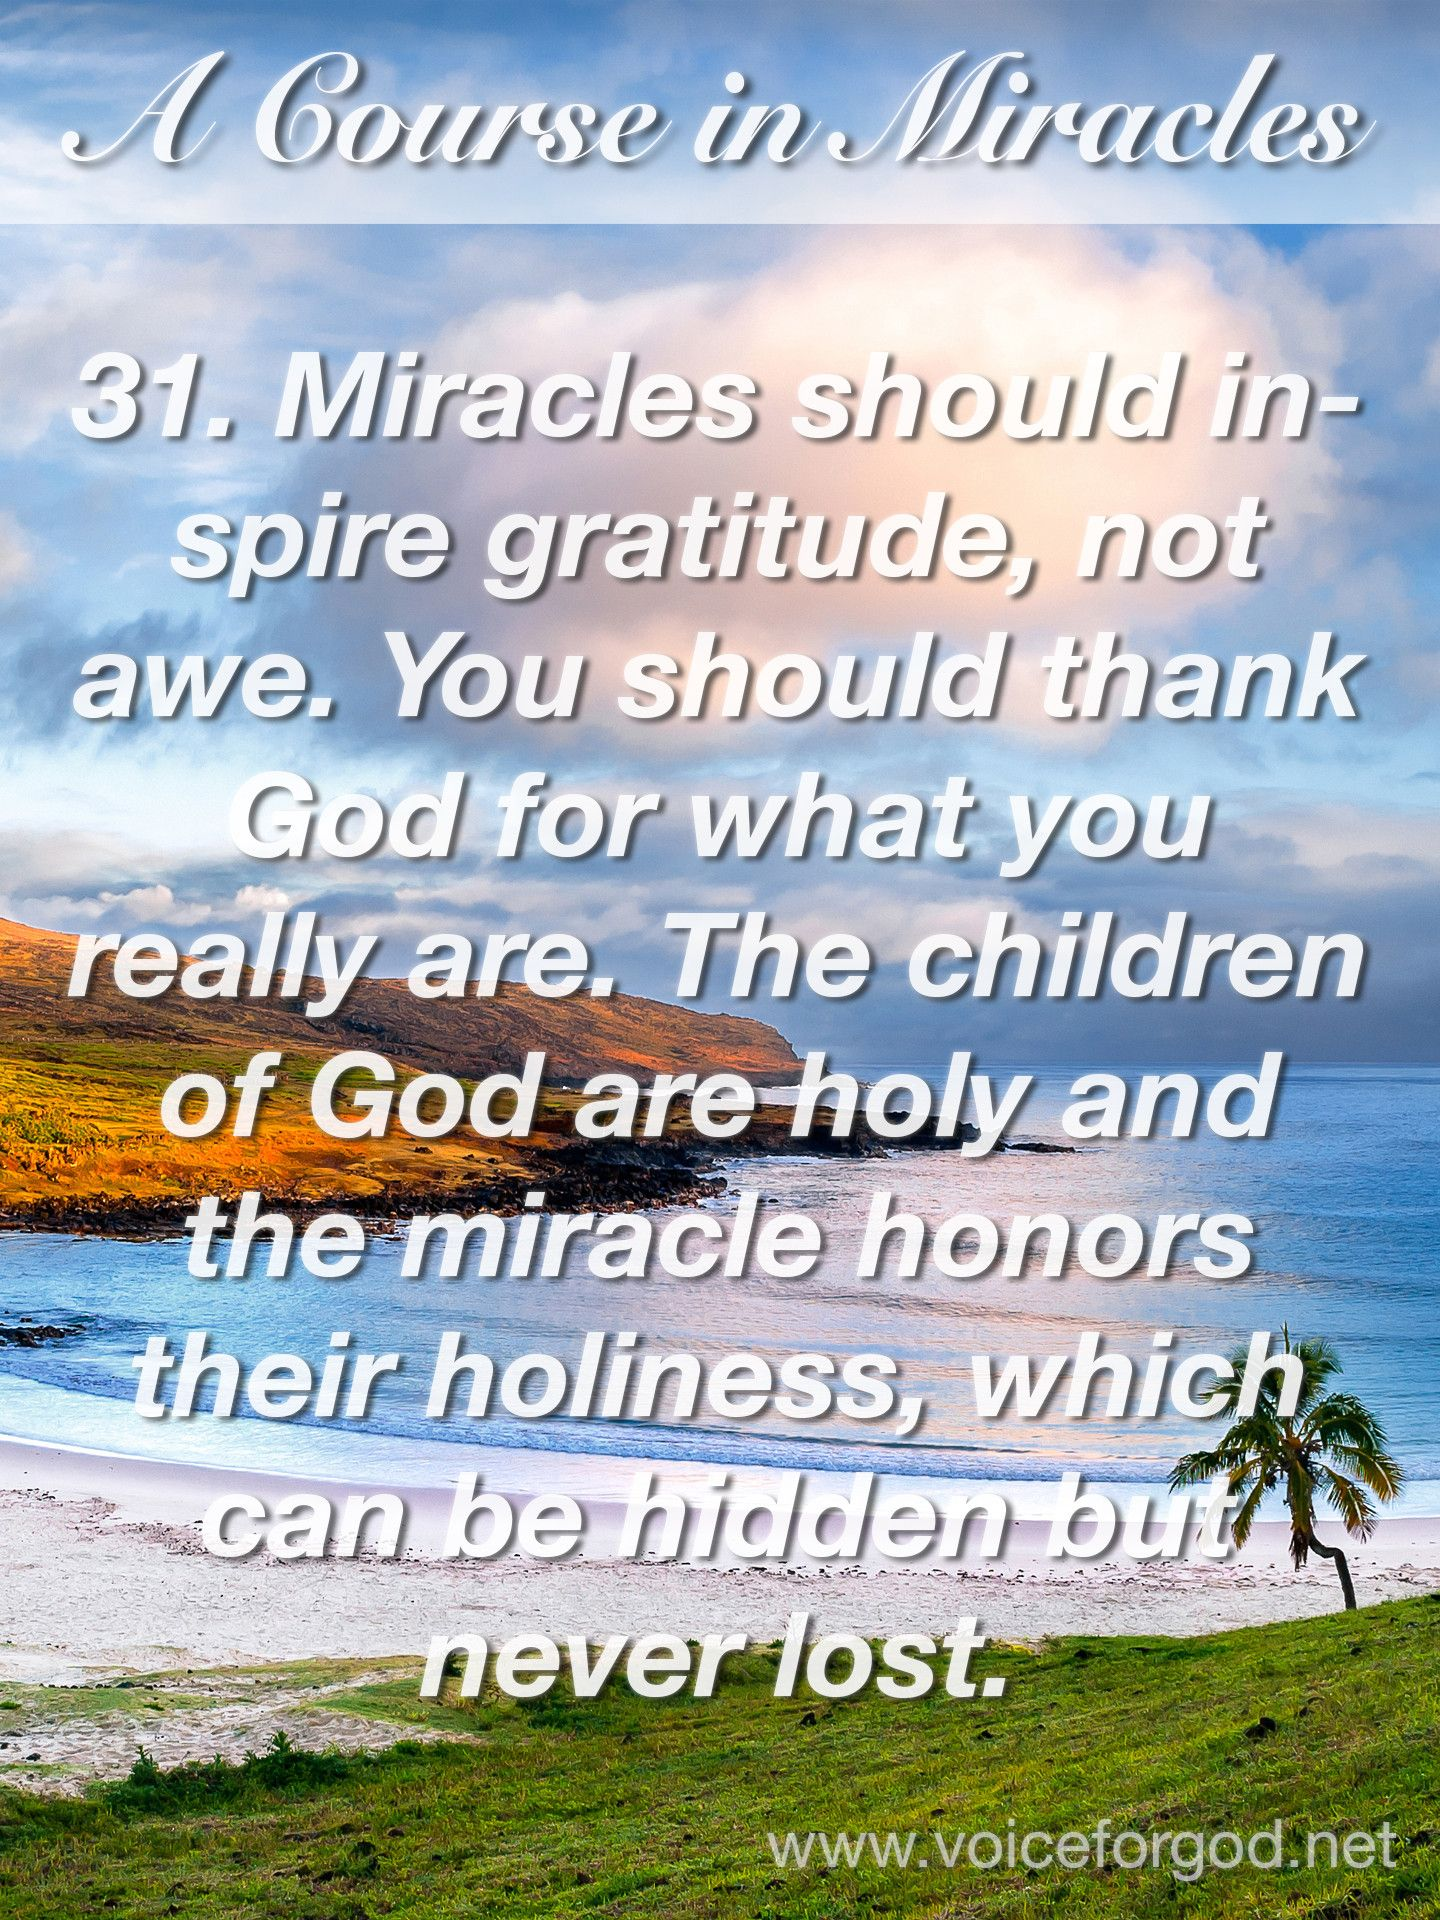 Acim Quote 0928 A Course In Miracles Quotes Miracle Quotes Course In Miracles Miracles